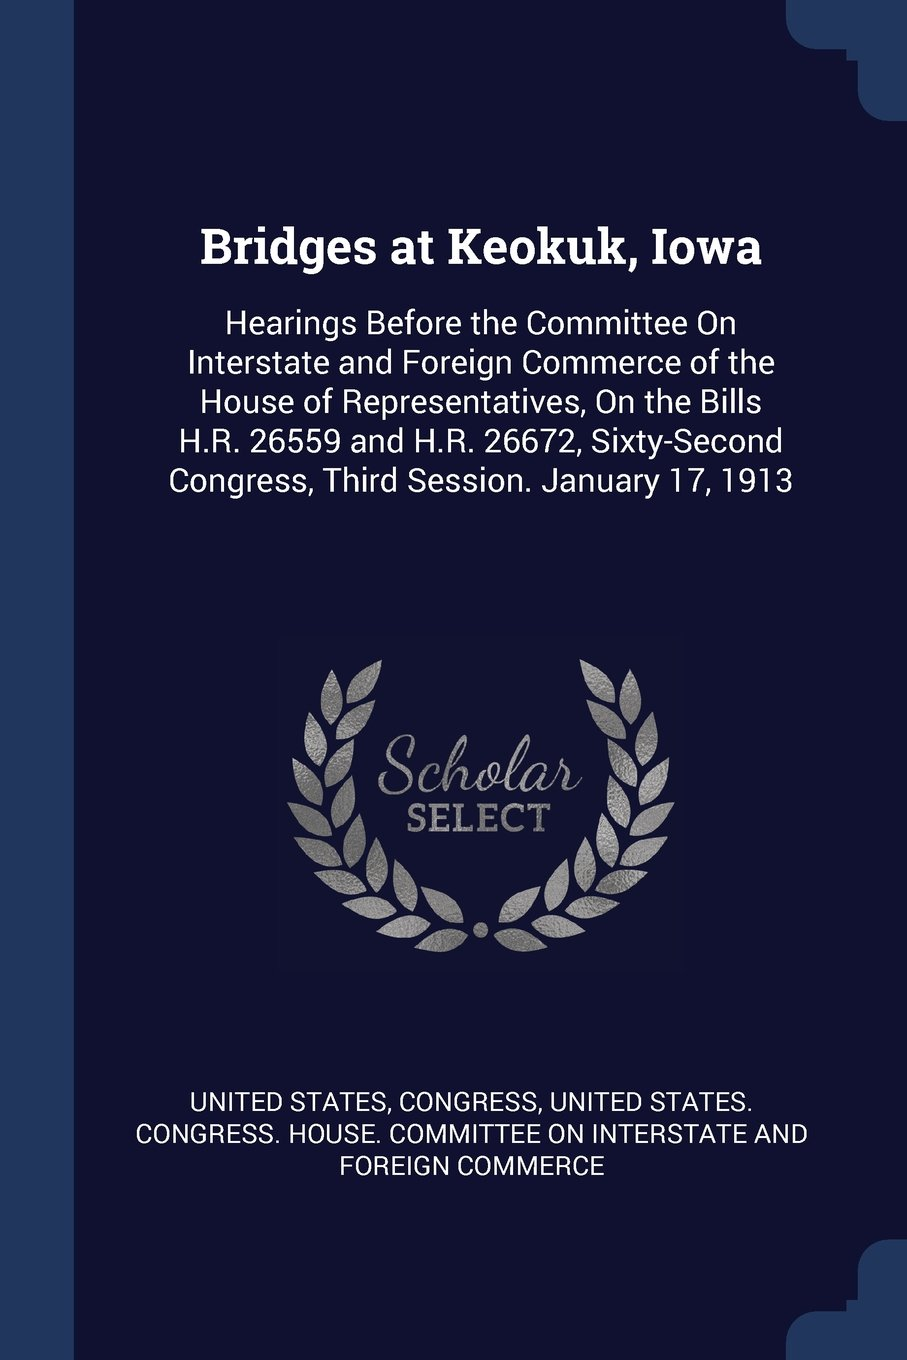 Download Bridges at Keokuk, Iowa: Hearings Before the Committee On Interstate and Foreign Commerce of the House of Representatives, On the Bills H.R. 26559 and ... Congress, Third Session. January 17, 1913 pdf epub